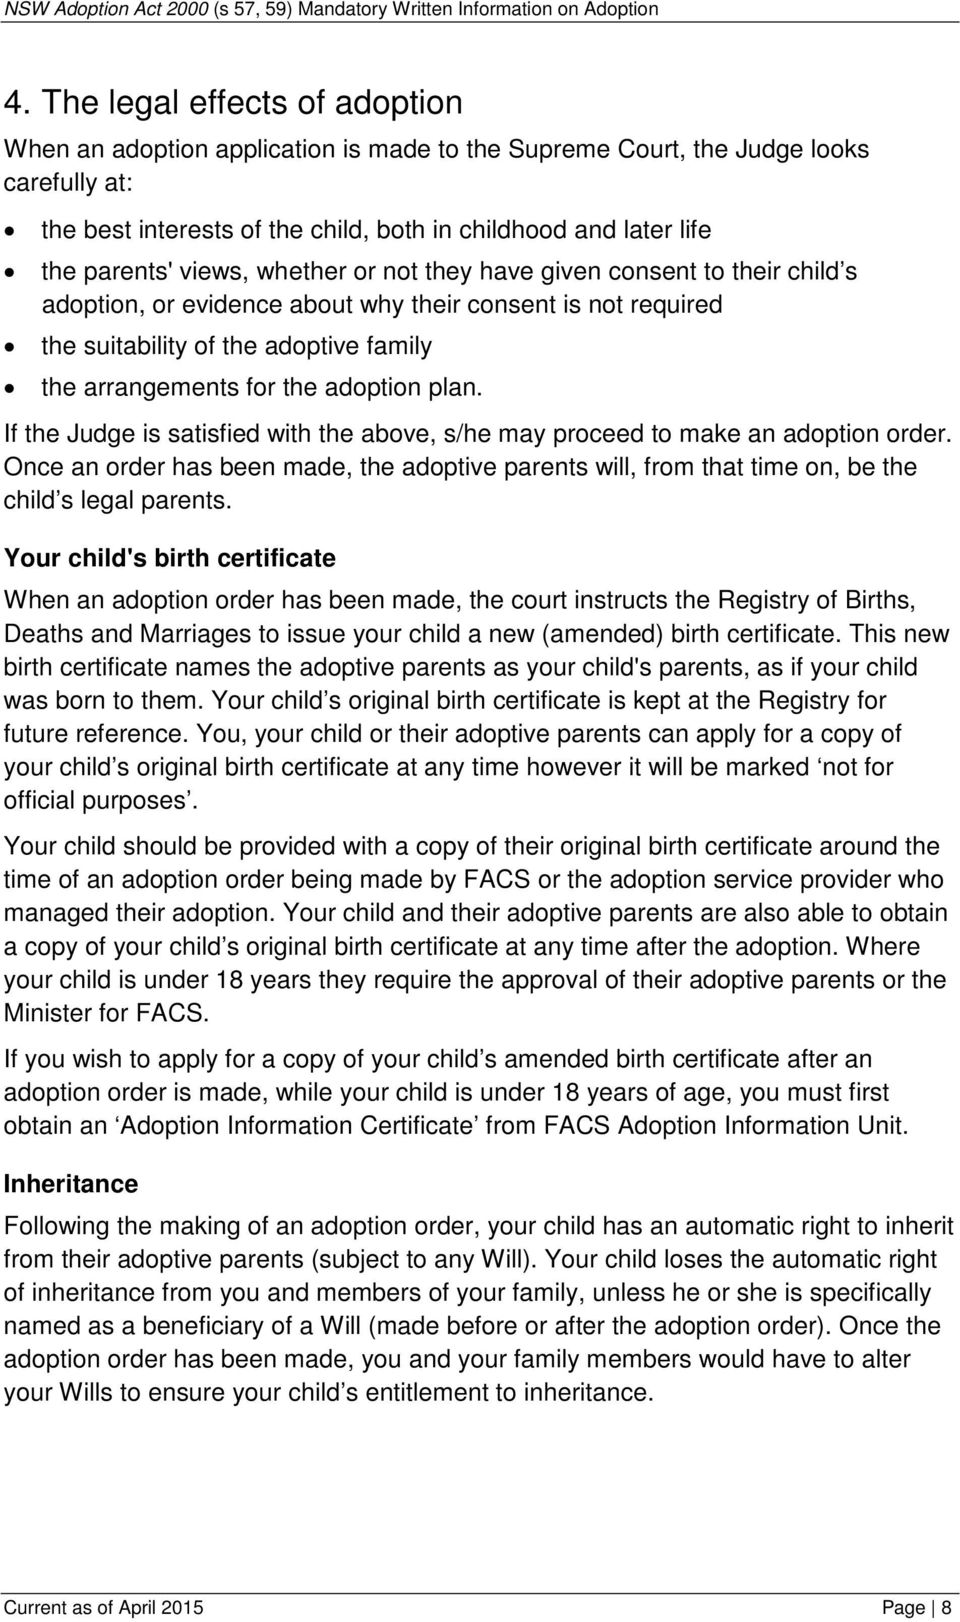 adoption plan. If the Judge is satisfied with the above, s/he may proceed to make an adoption order.